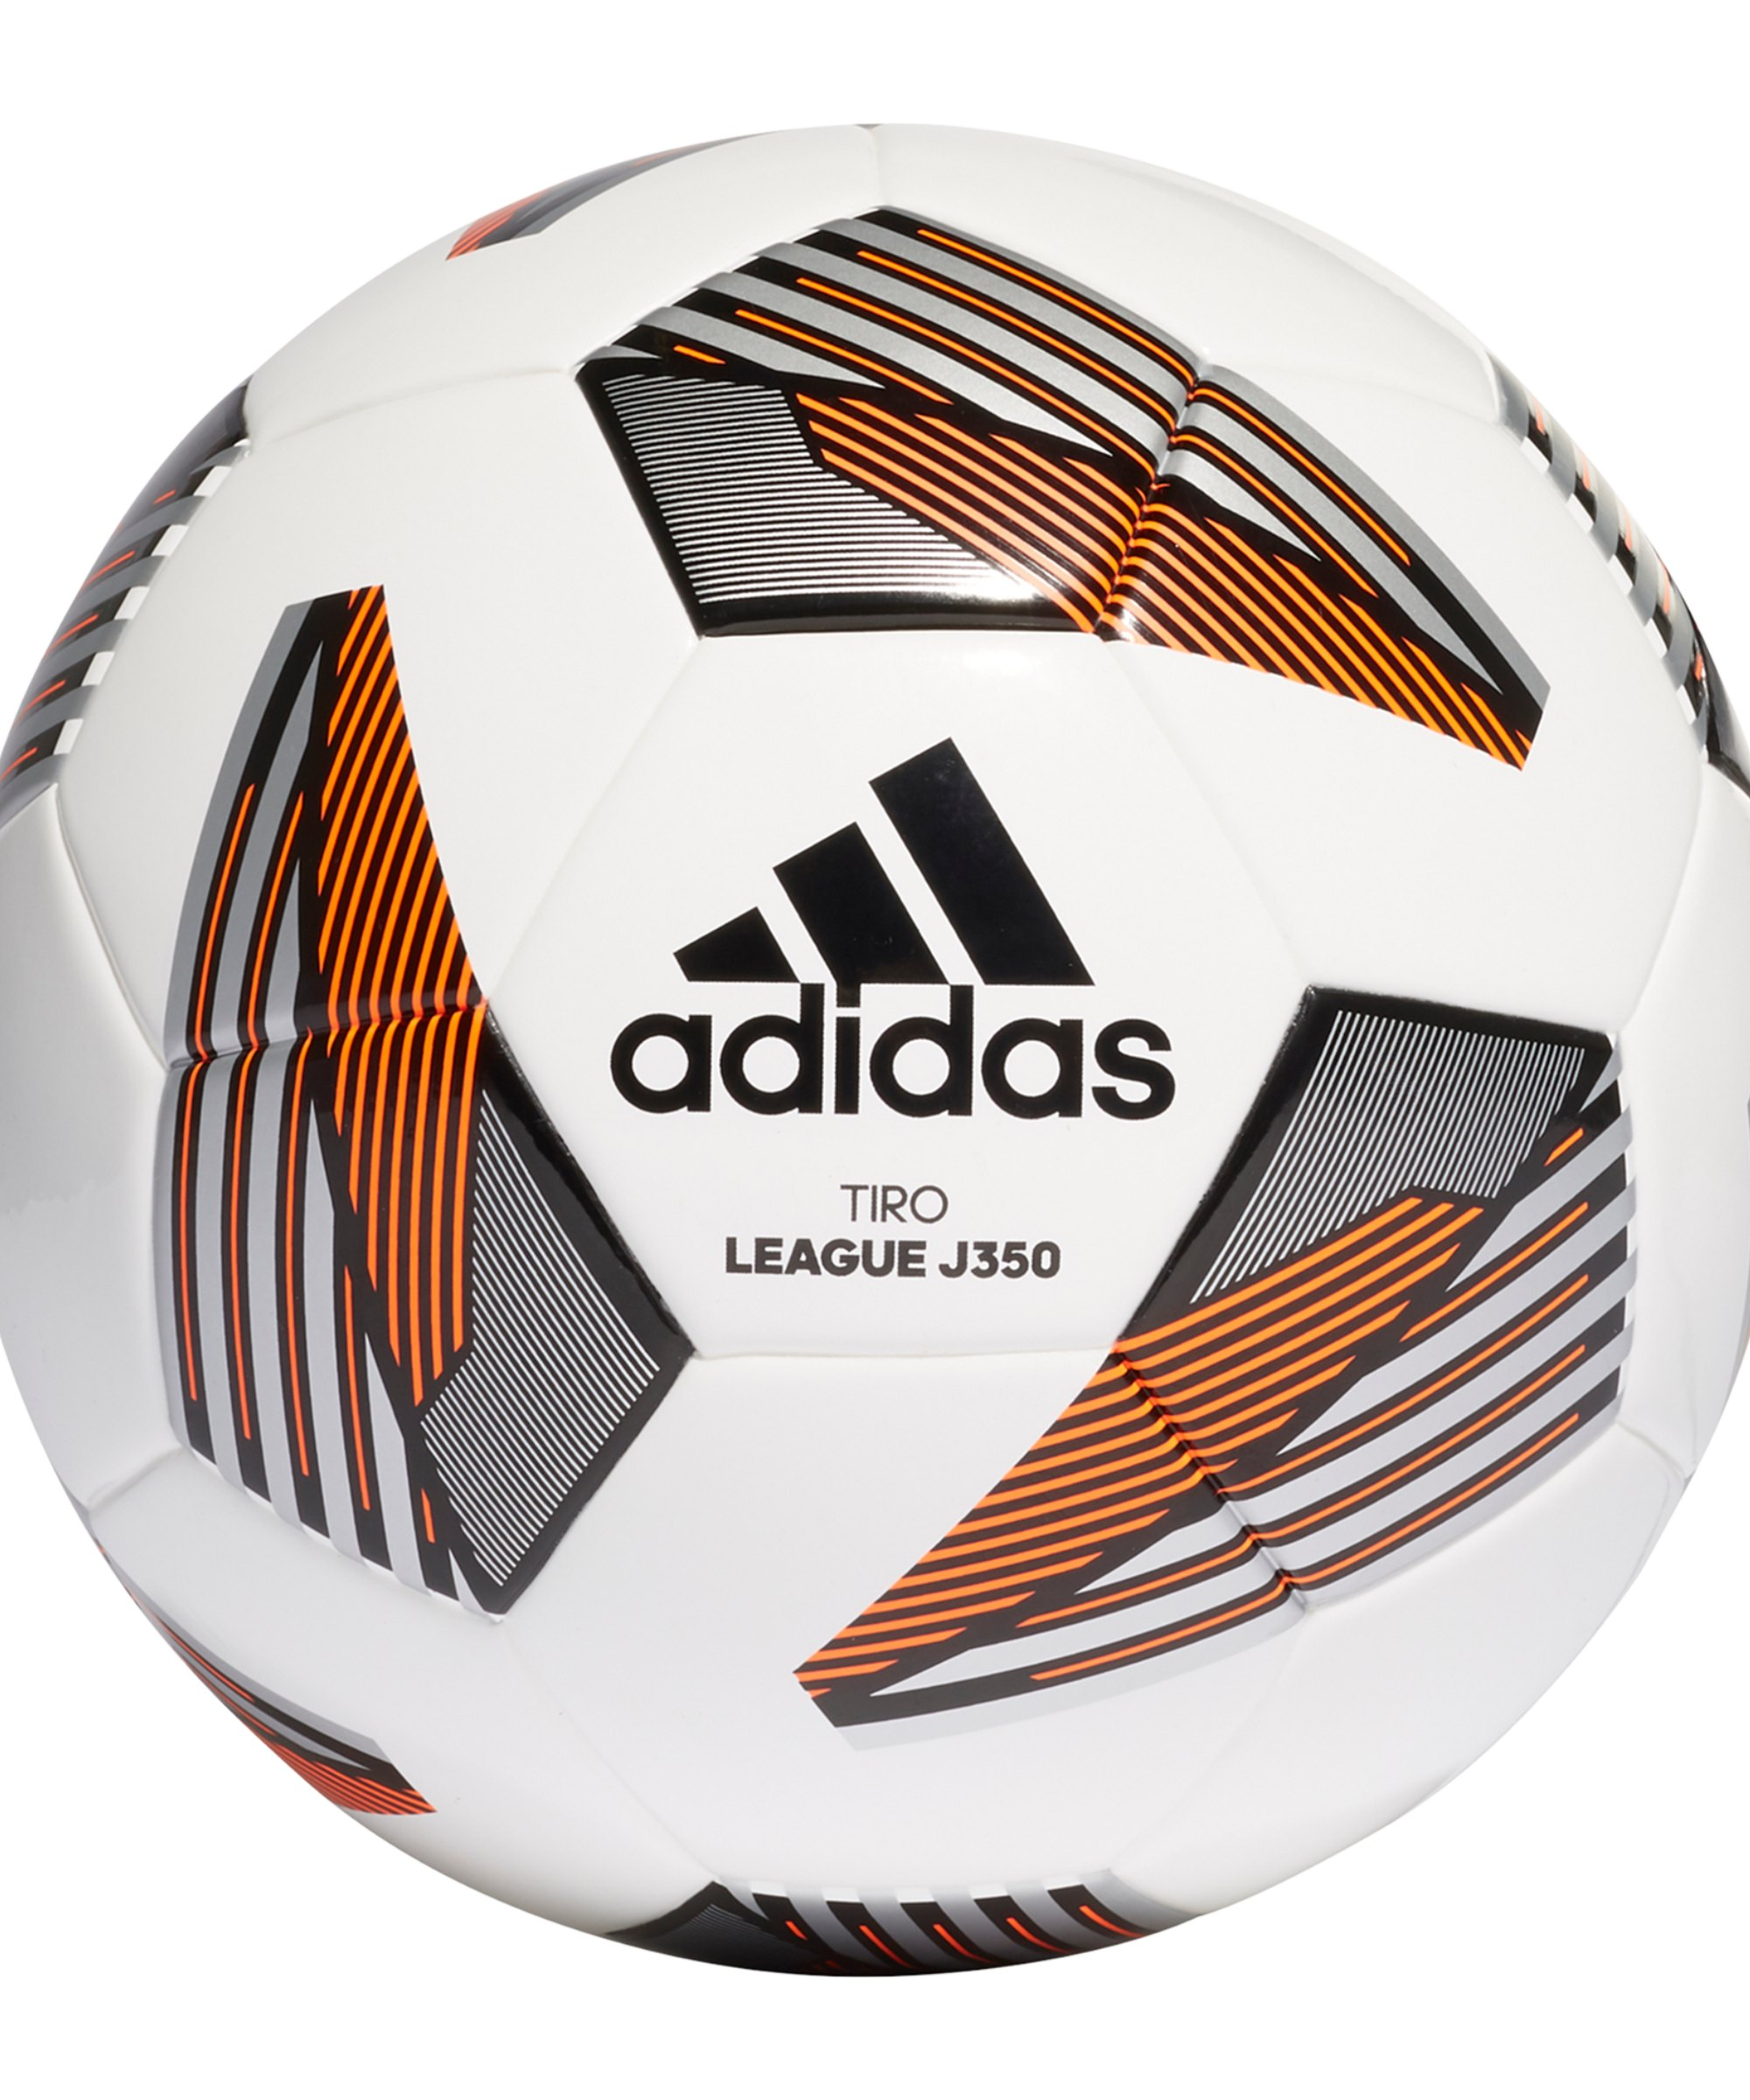 adidas Tiro League Junior 350 Gramm Fussball Weiss - weiss